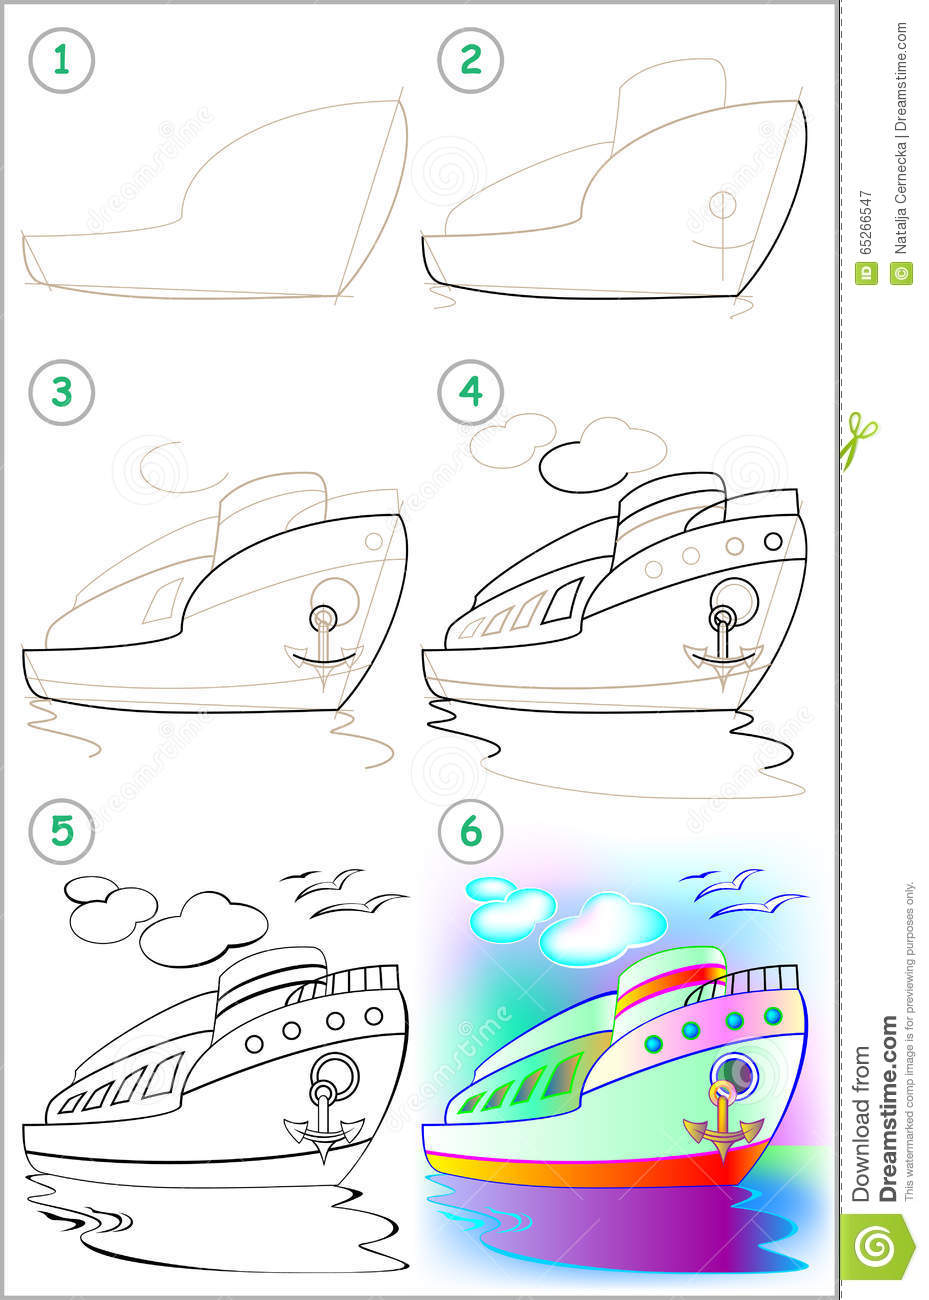 page shows how to learn step by step to draw a ship